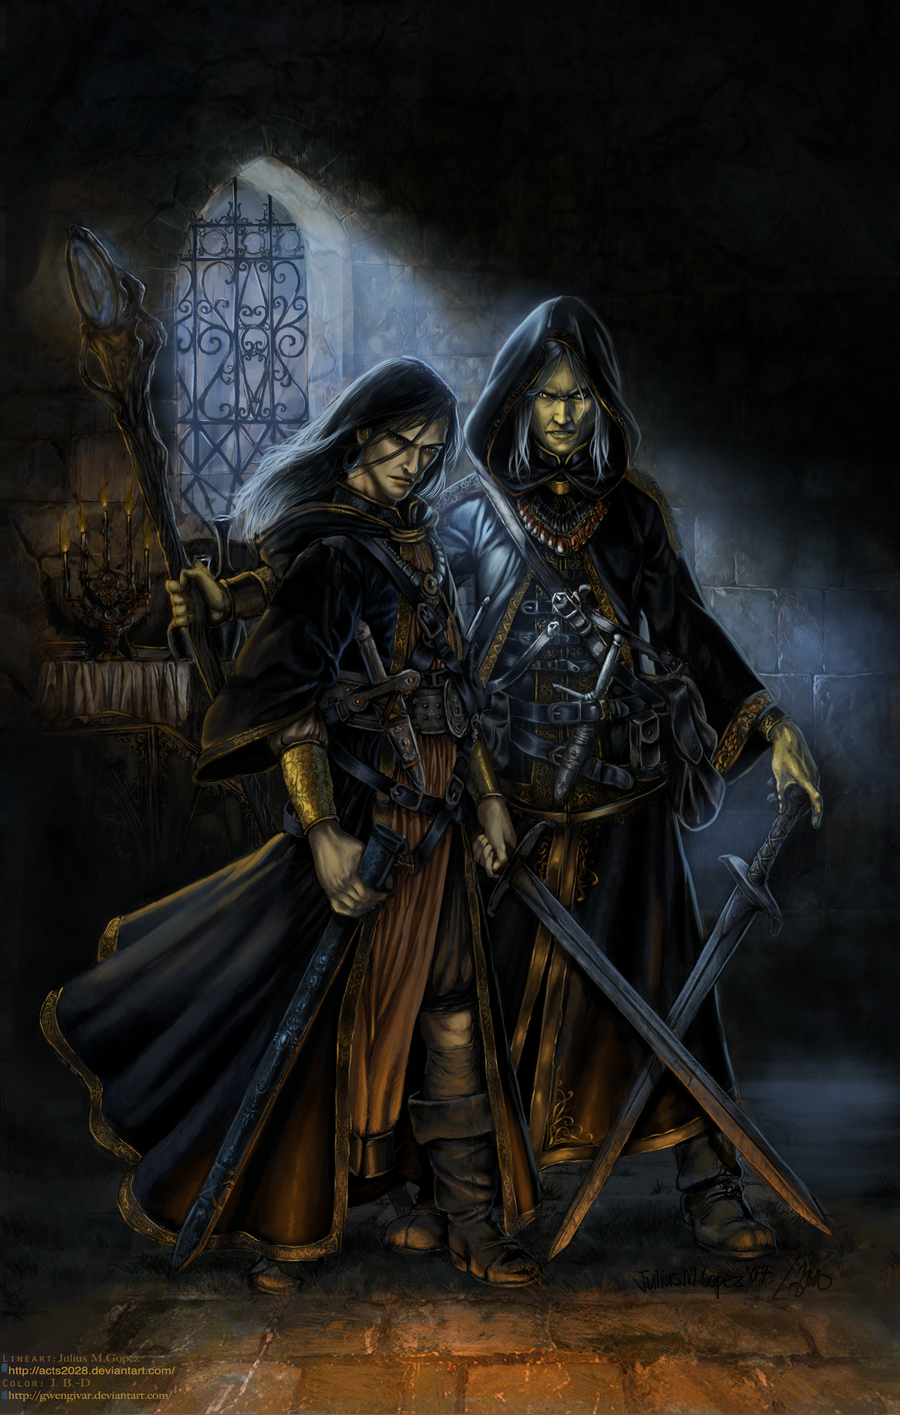 http://fc06.deviantart.net/fs50/i/2009/295/1/a/Raistlin_and_Dalamar_by_gwengivar.png